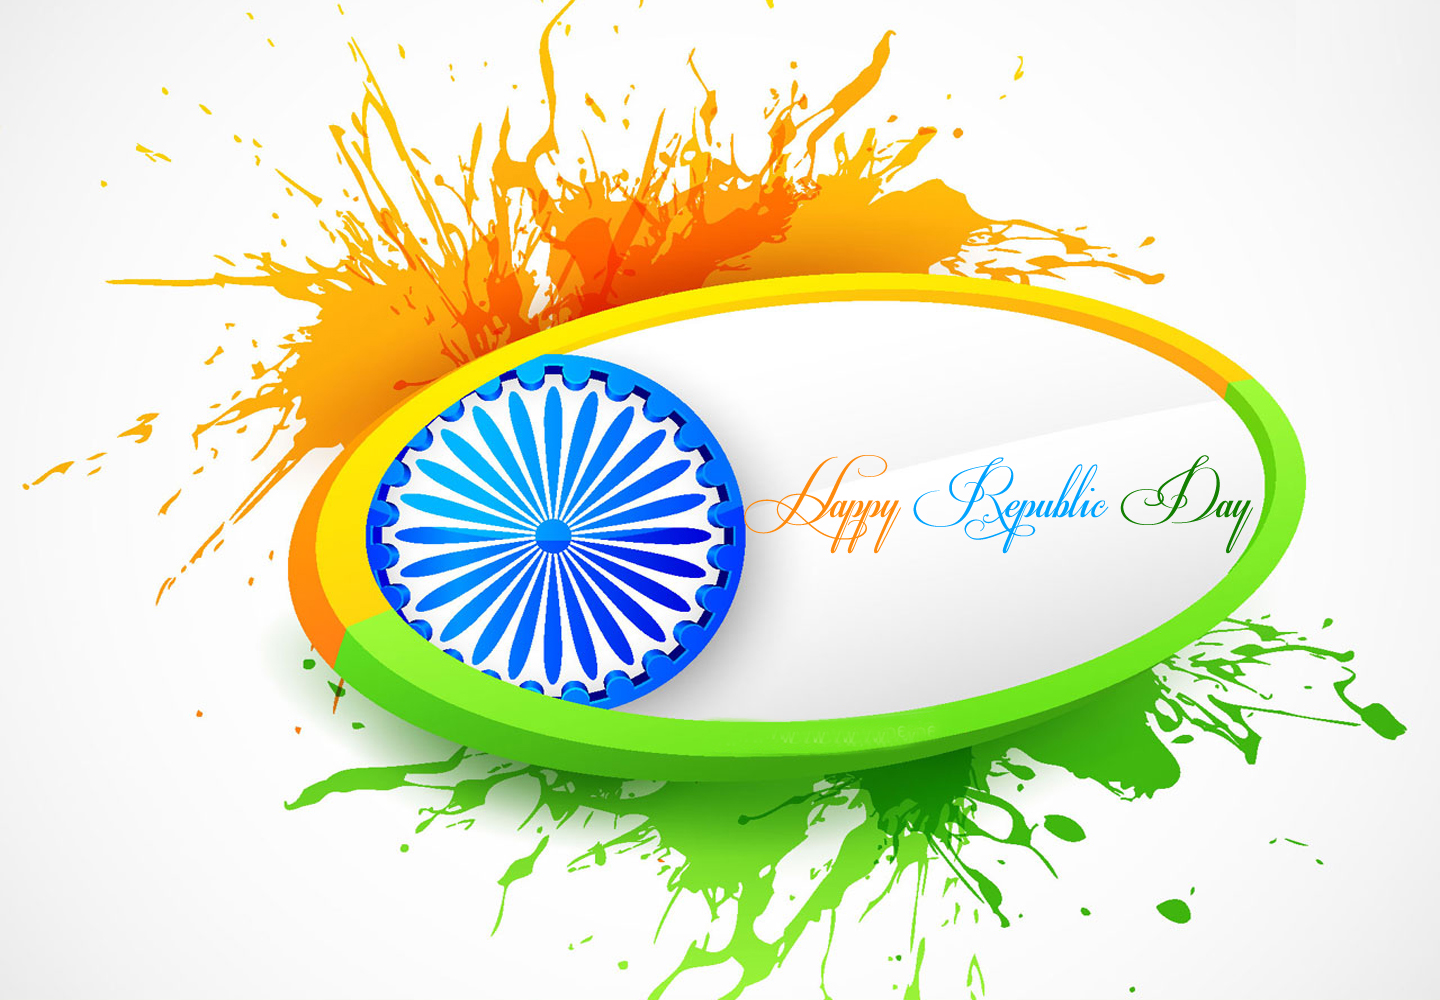 Happy Republic Day Pics, Photos, Images, Wallpapers, HD